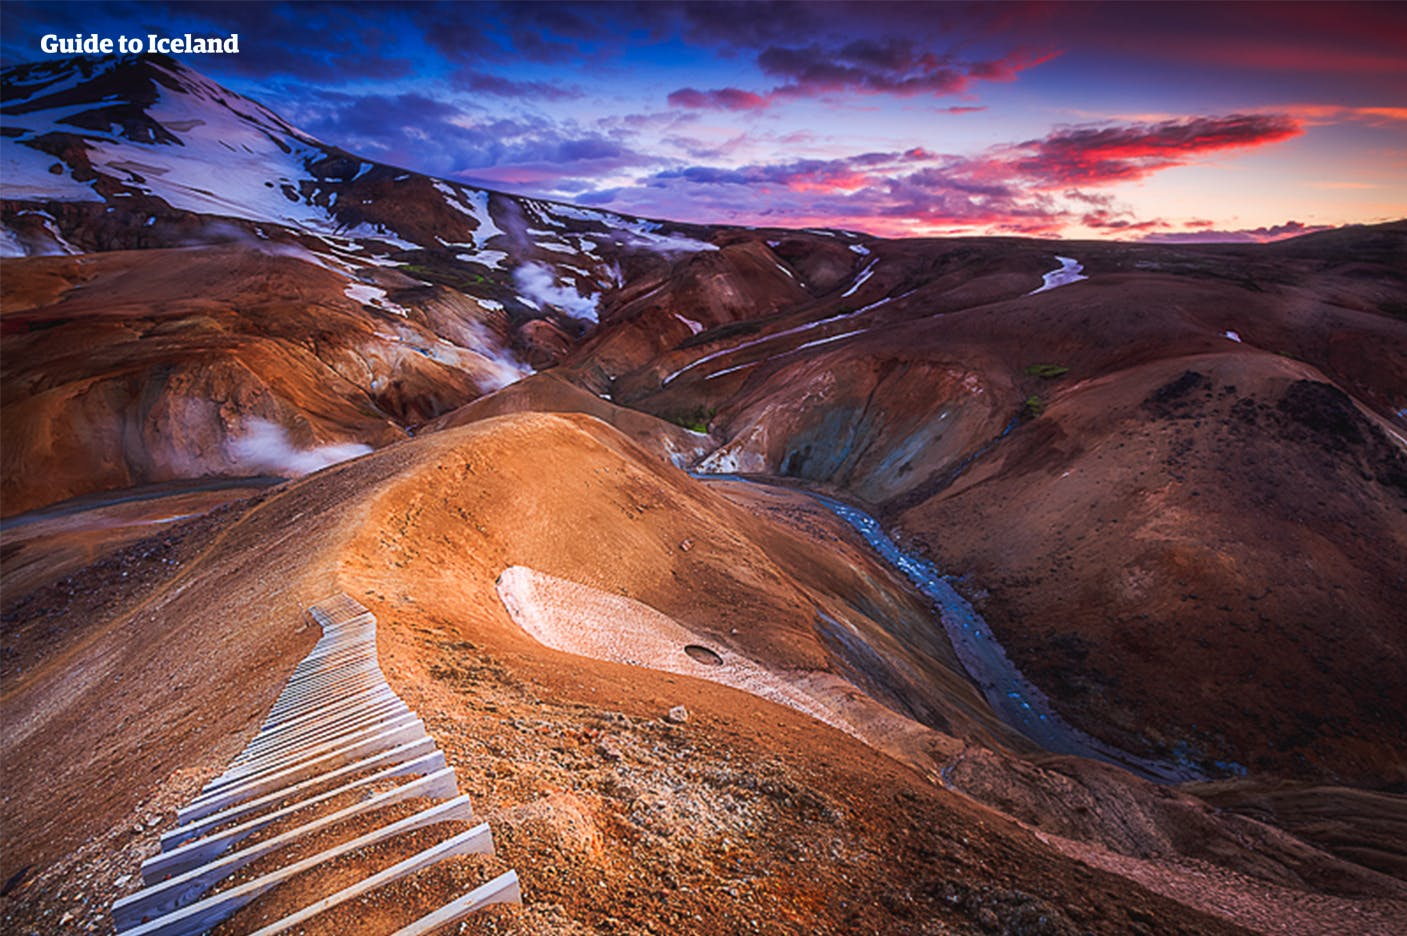 A trail leads to a great viewing point in the Icelandic Highlands.